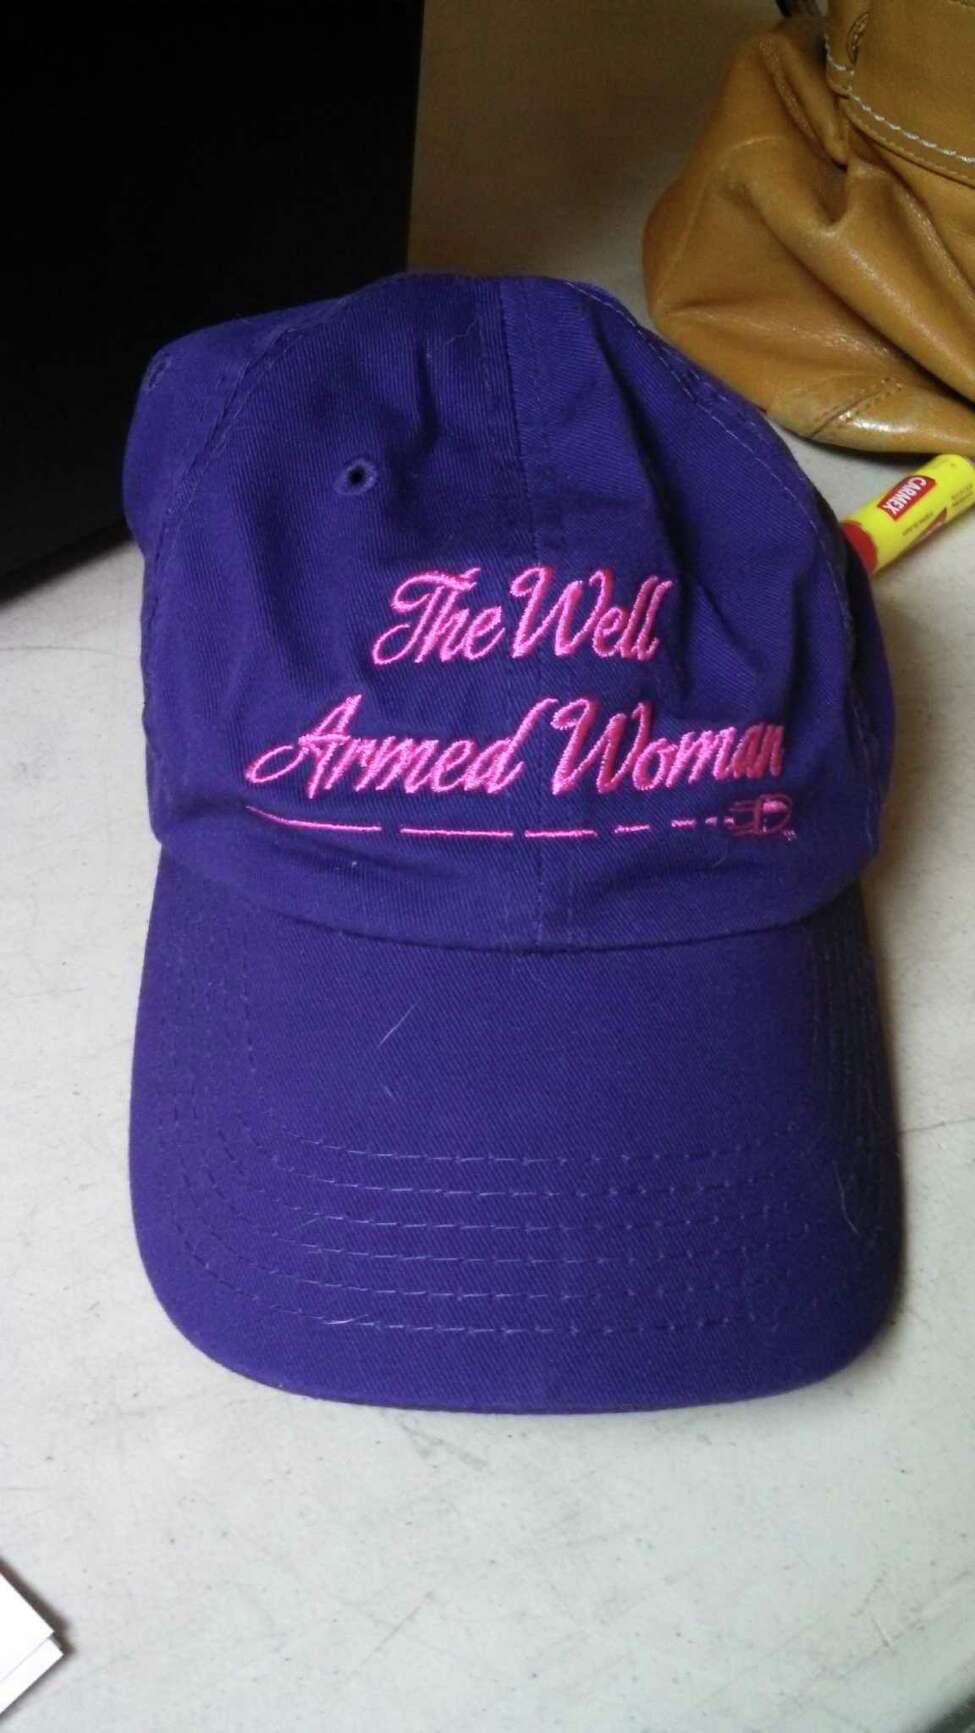 A purple cap with